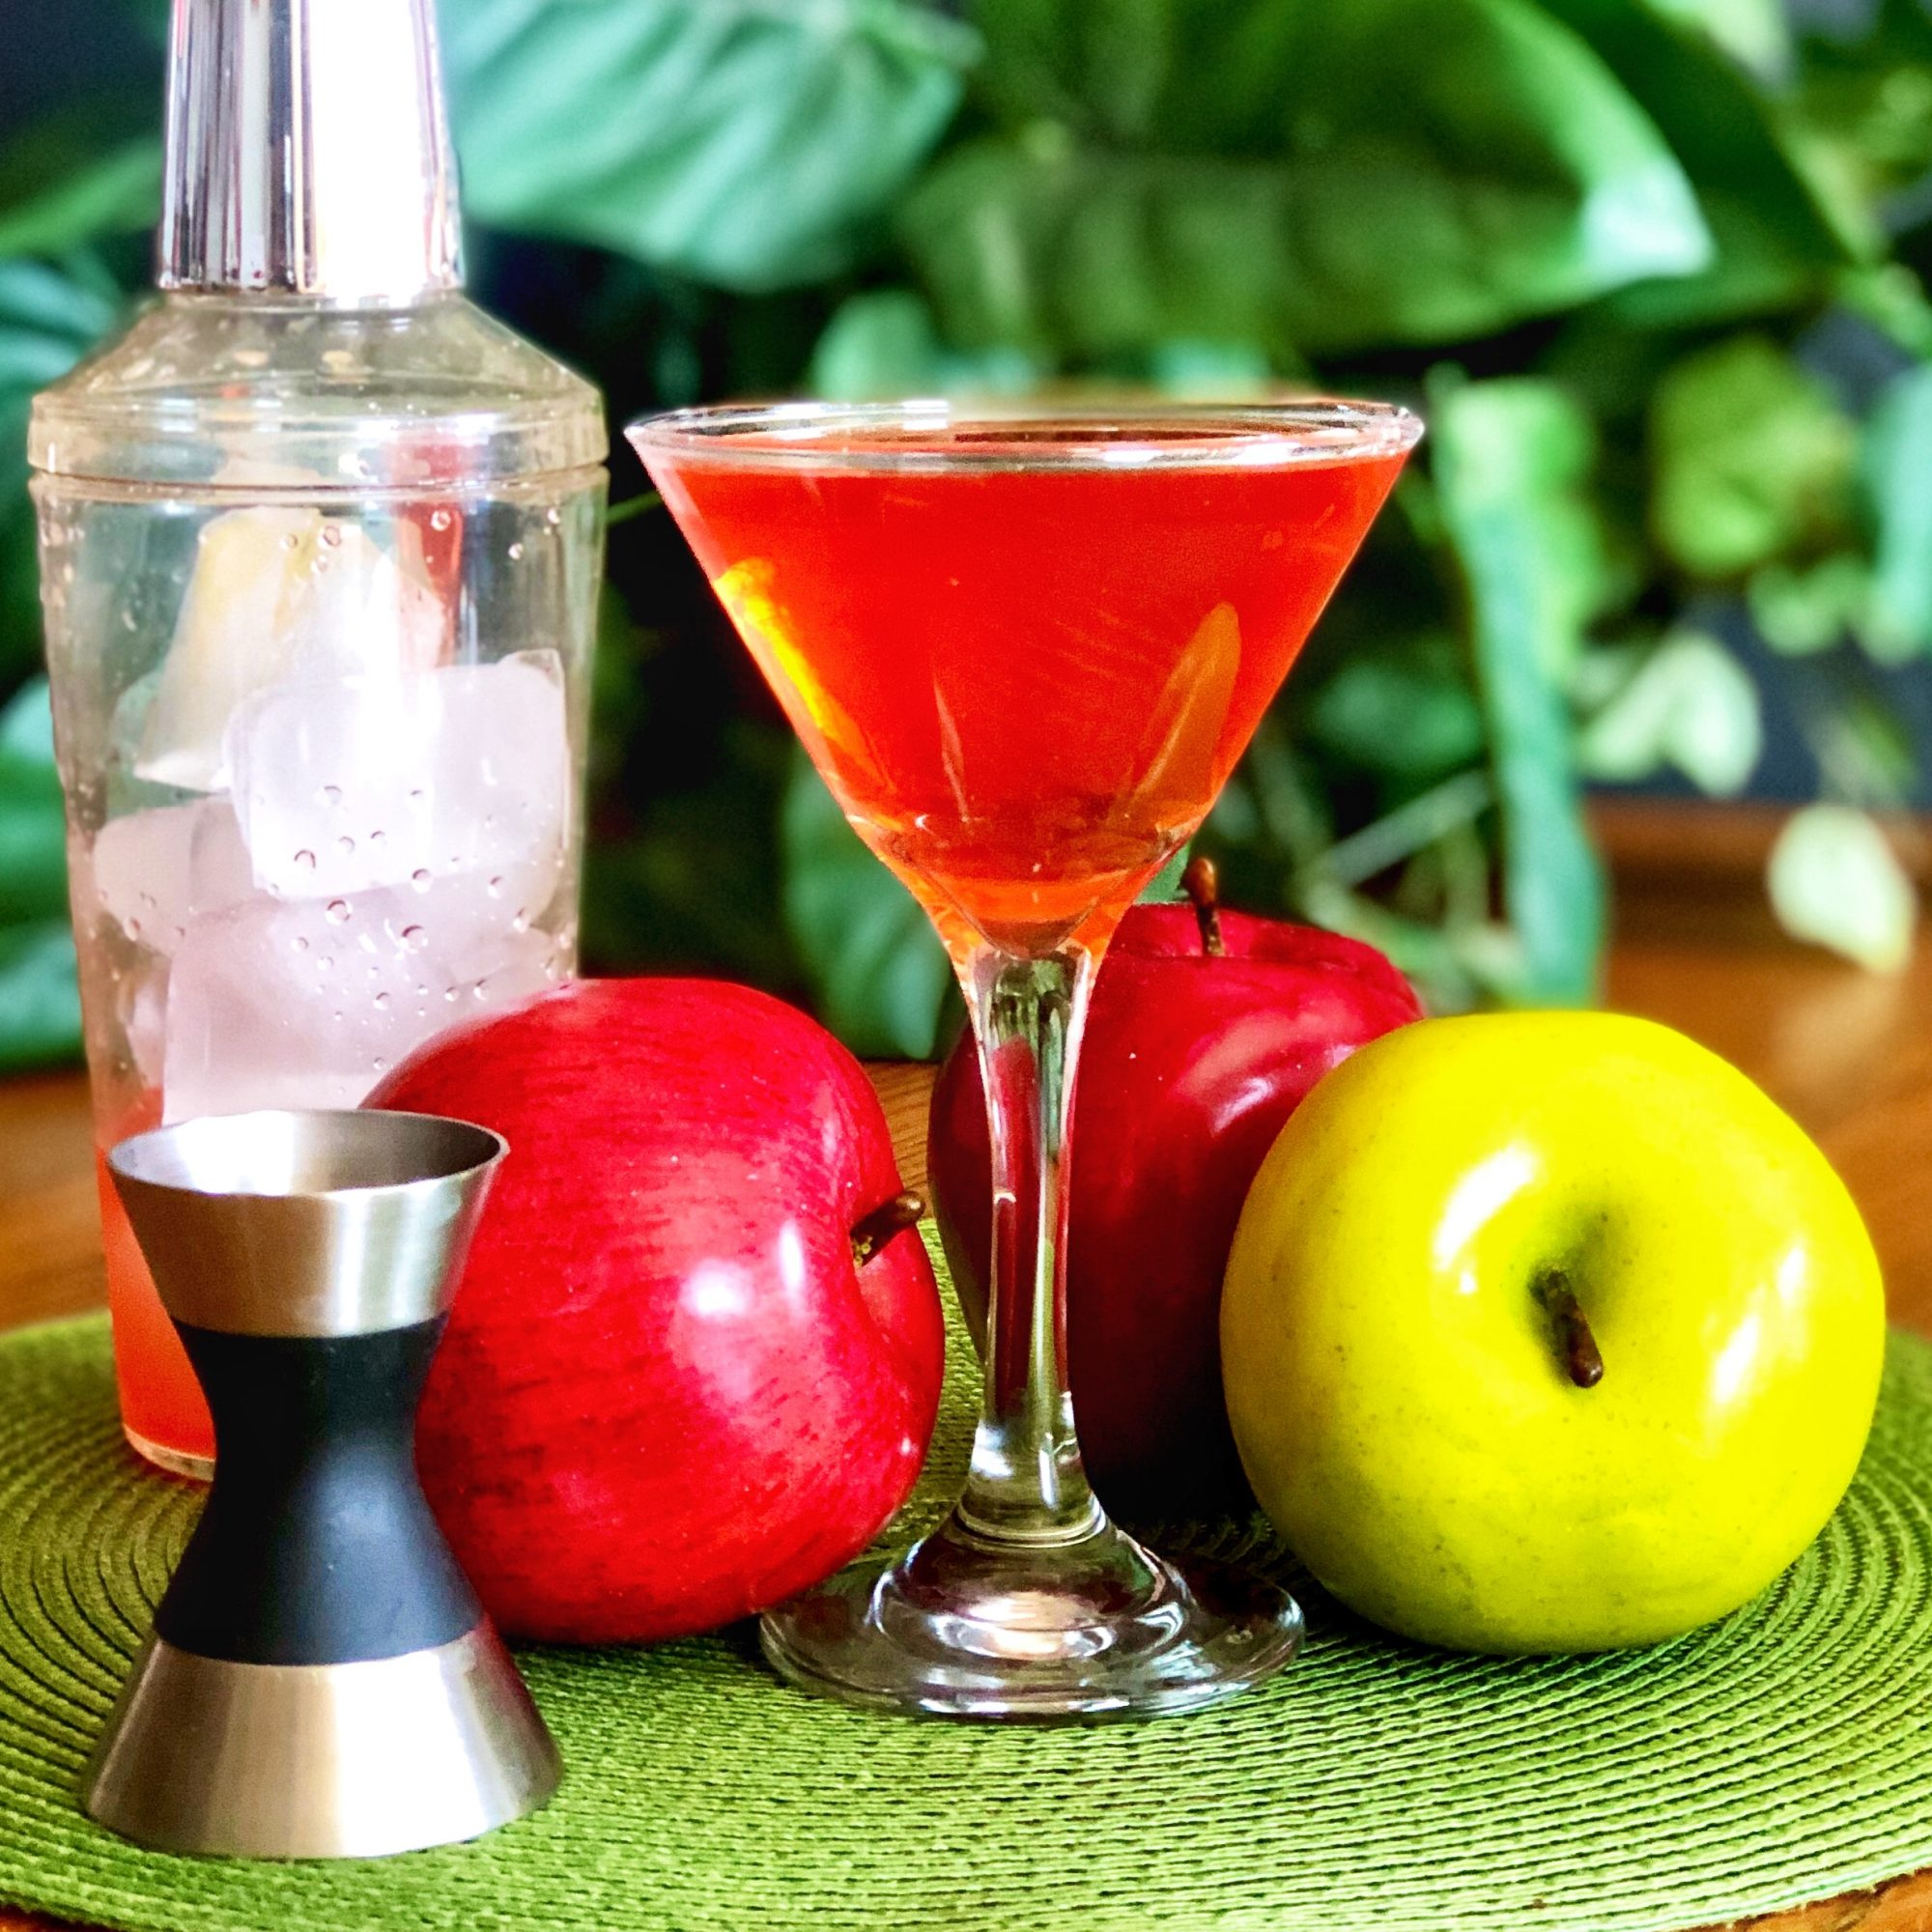 red apple martini in a glass with apples on the side